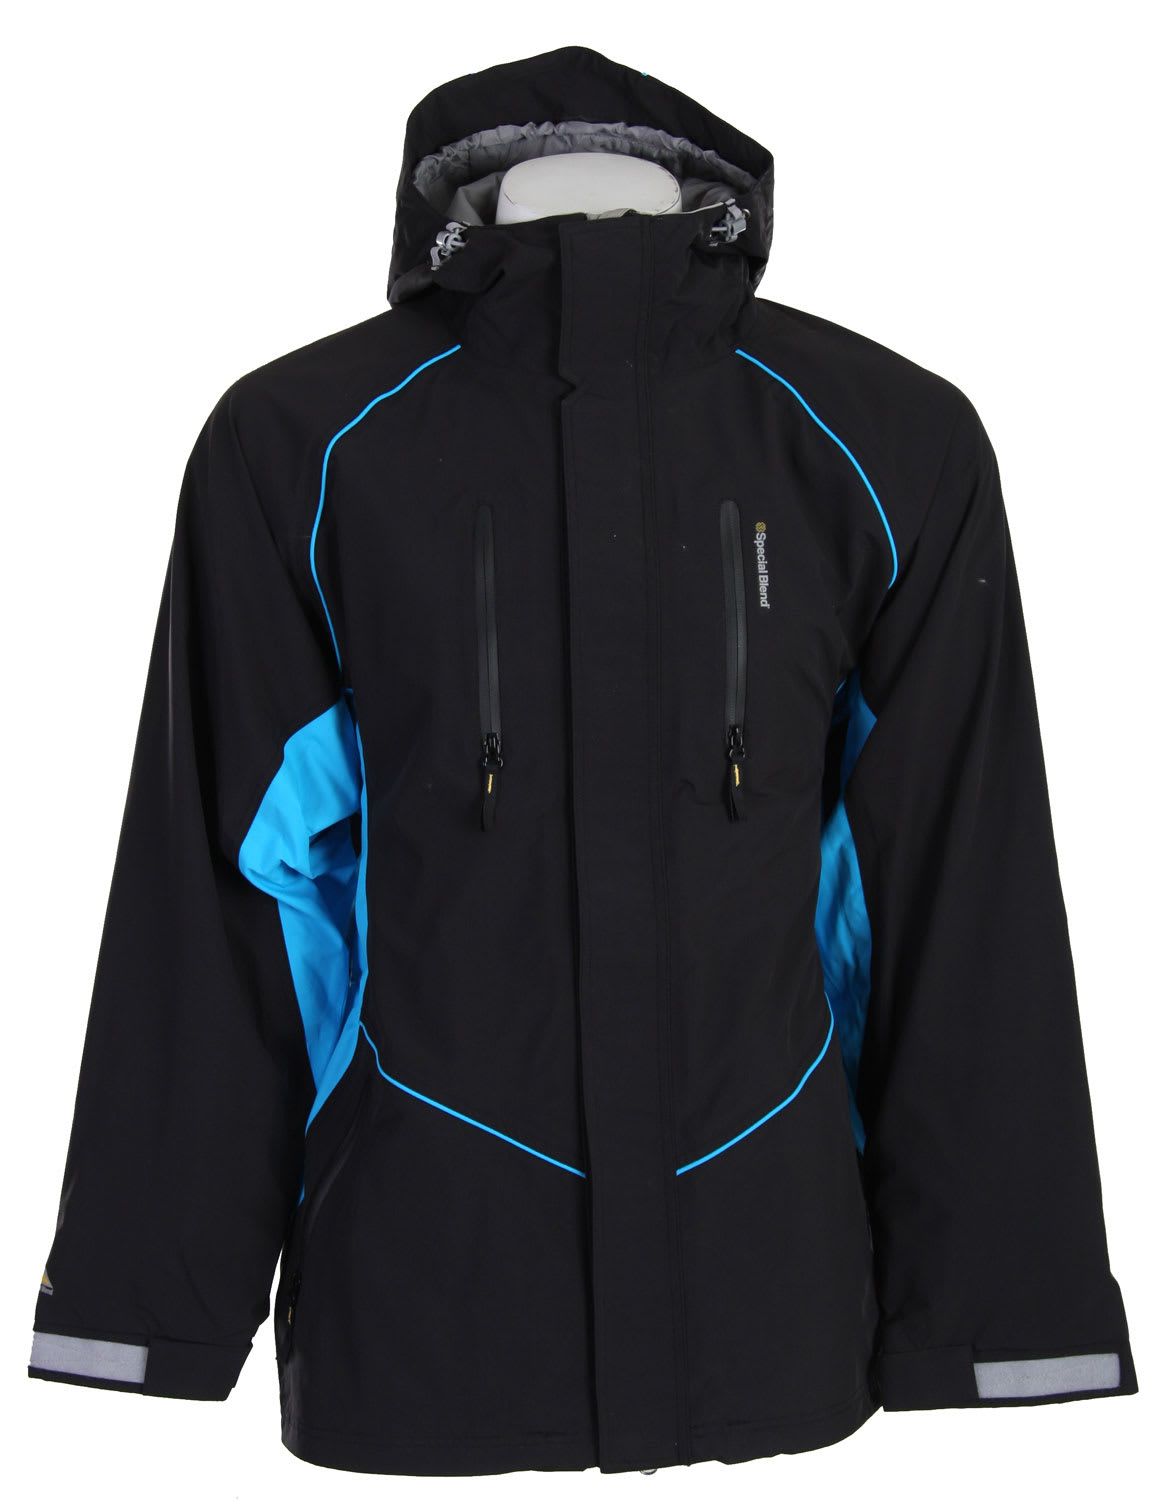 Shop for Special Blend Signature Snowboard Jacket Blackout - Men's